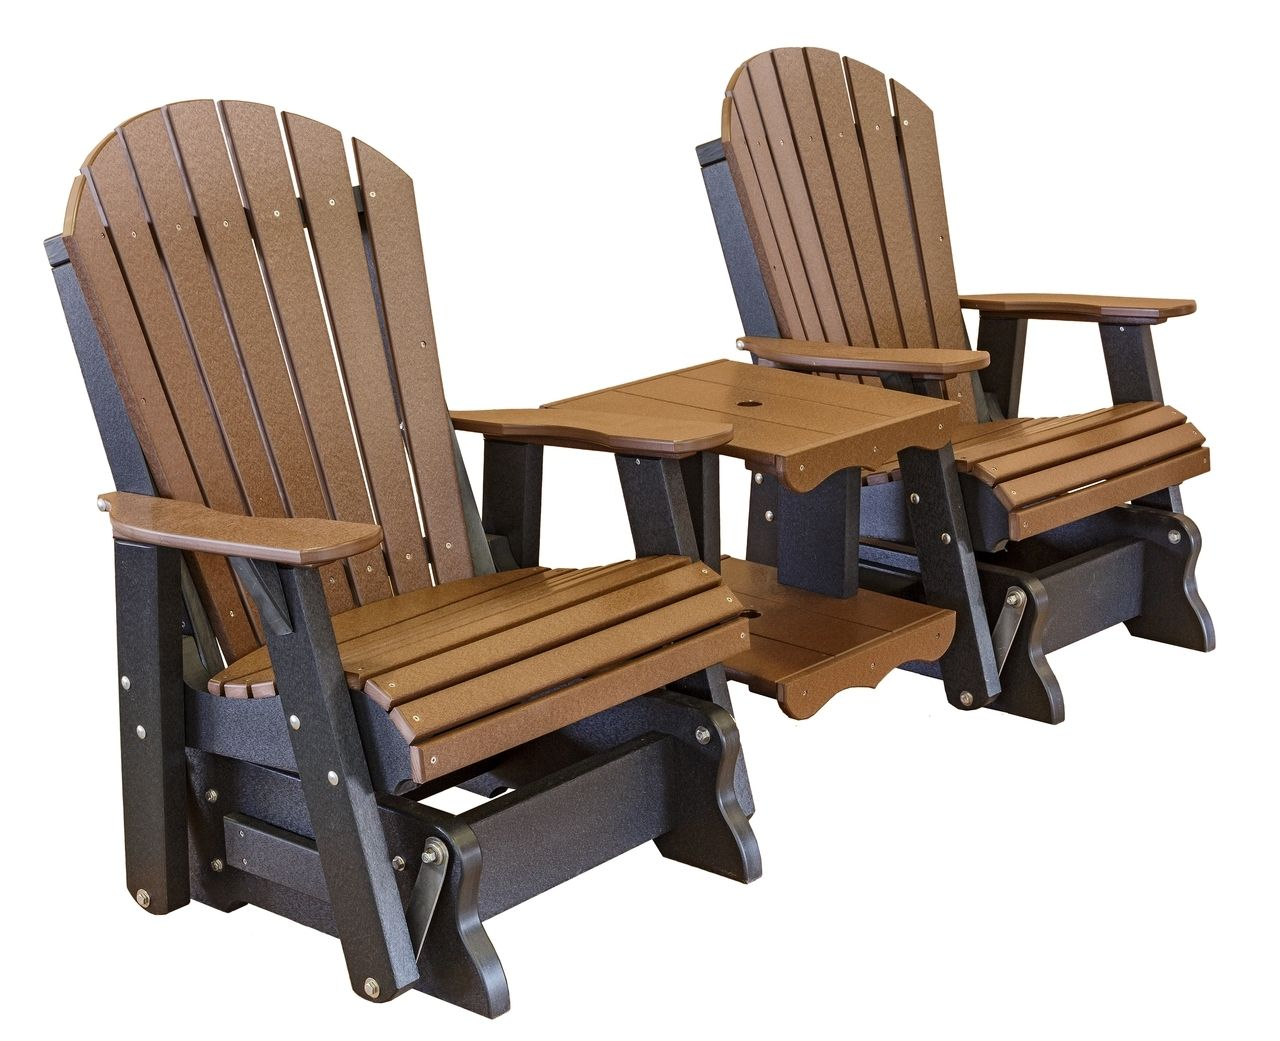 Weather Resistant Double Glider Chairs U2013 Other Than A Rocking Chair You  Canu0027t Get Much More Comfortable Than A Poly Lumber Glider Chair For Total  Relaxation ...